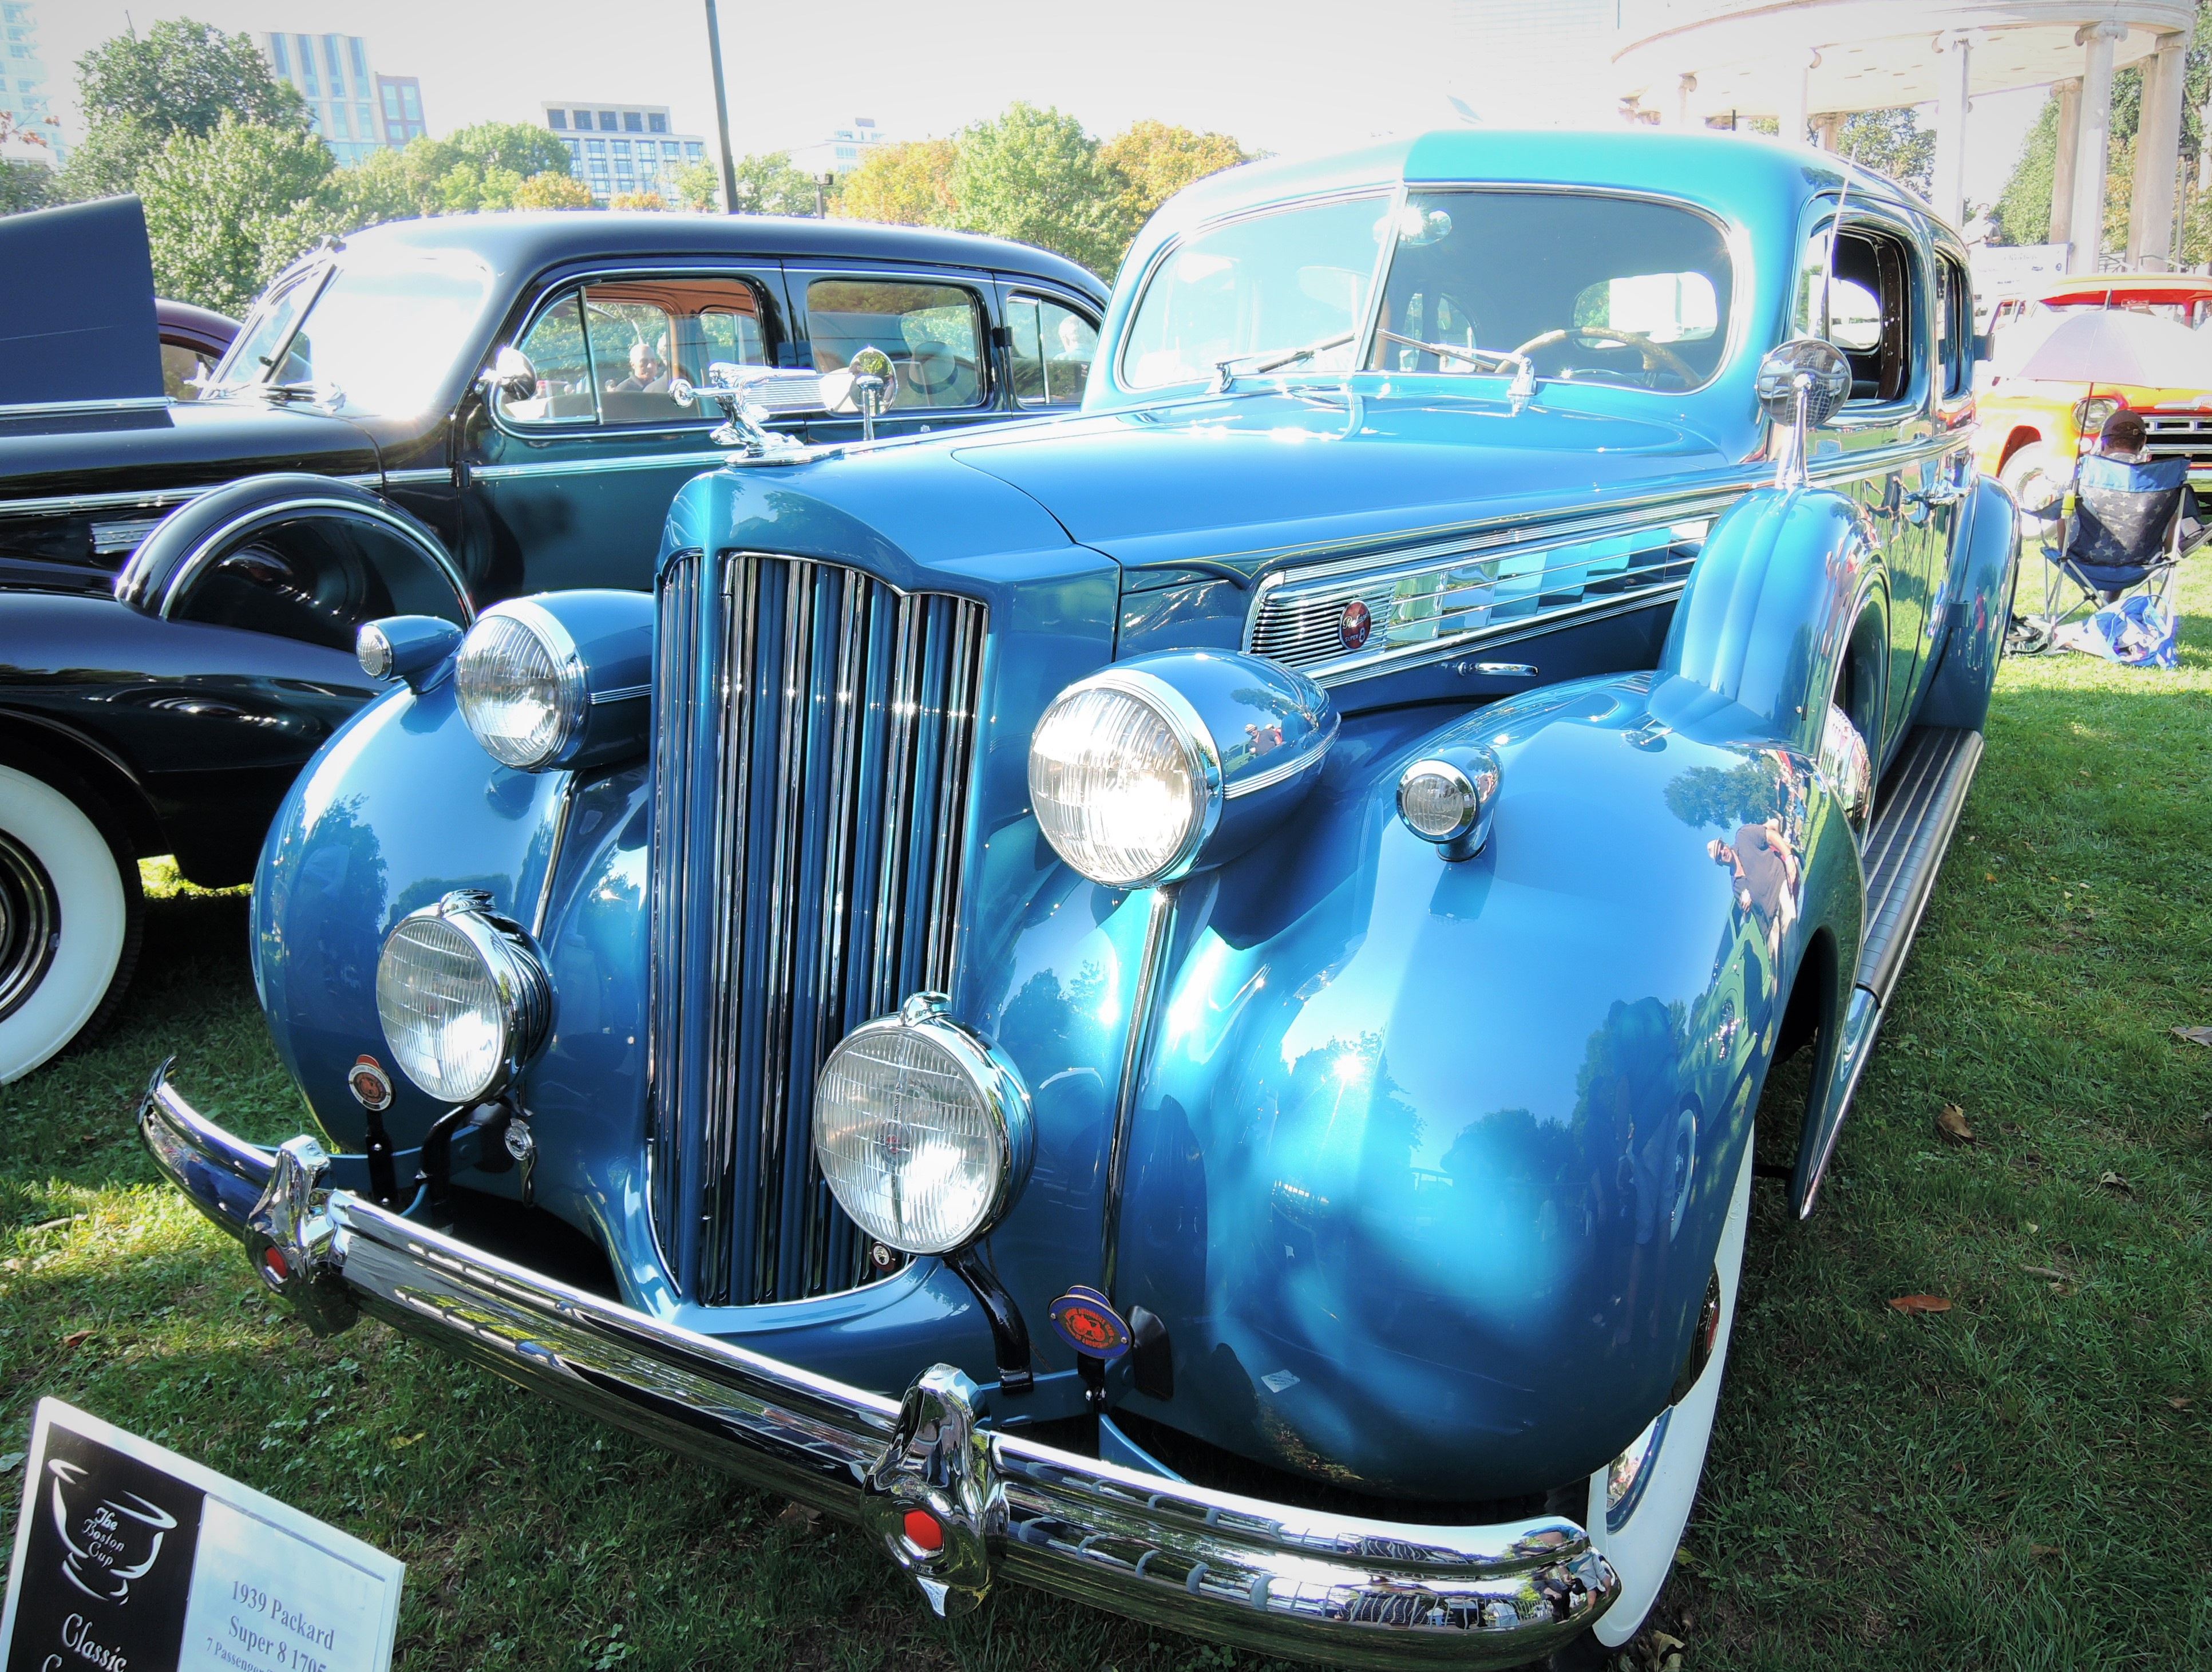 blue 1939 Packard Super 8 1705 7-passenger Touring Sedan - The Boston Cup 2017